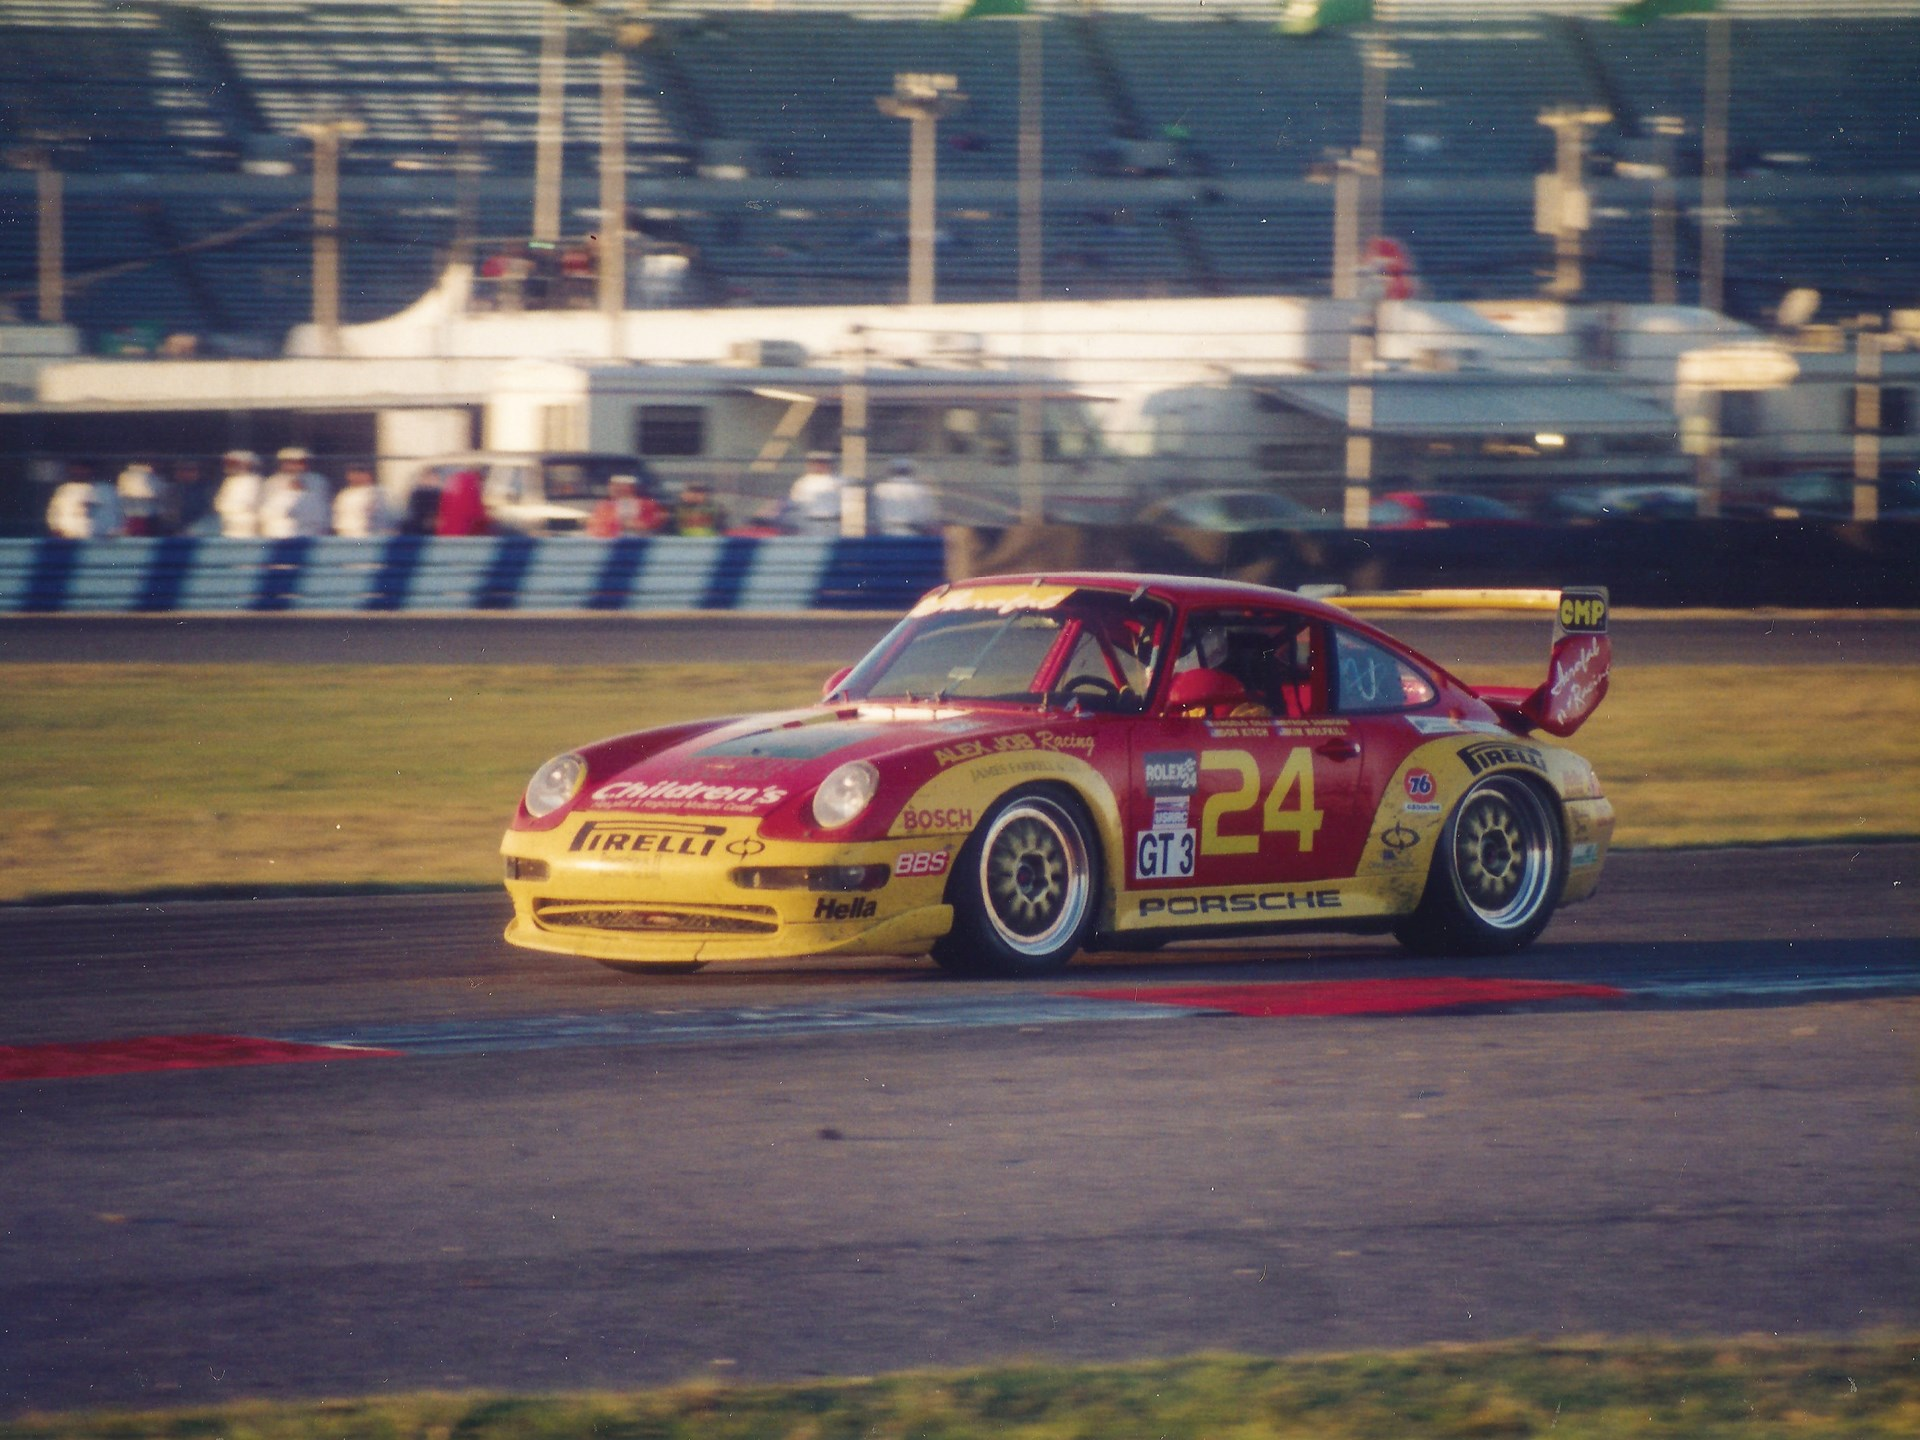 The 993 RSR at the 1998 24 Hours of Daytona, where it placed 12th in class.